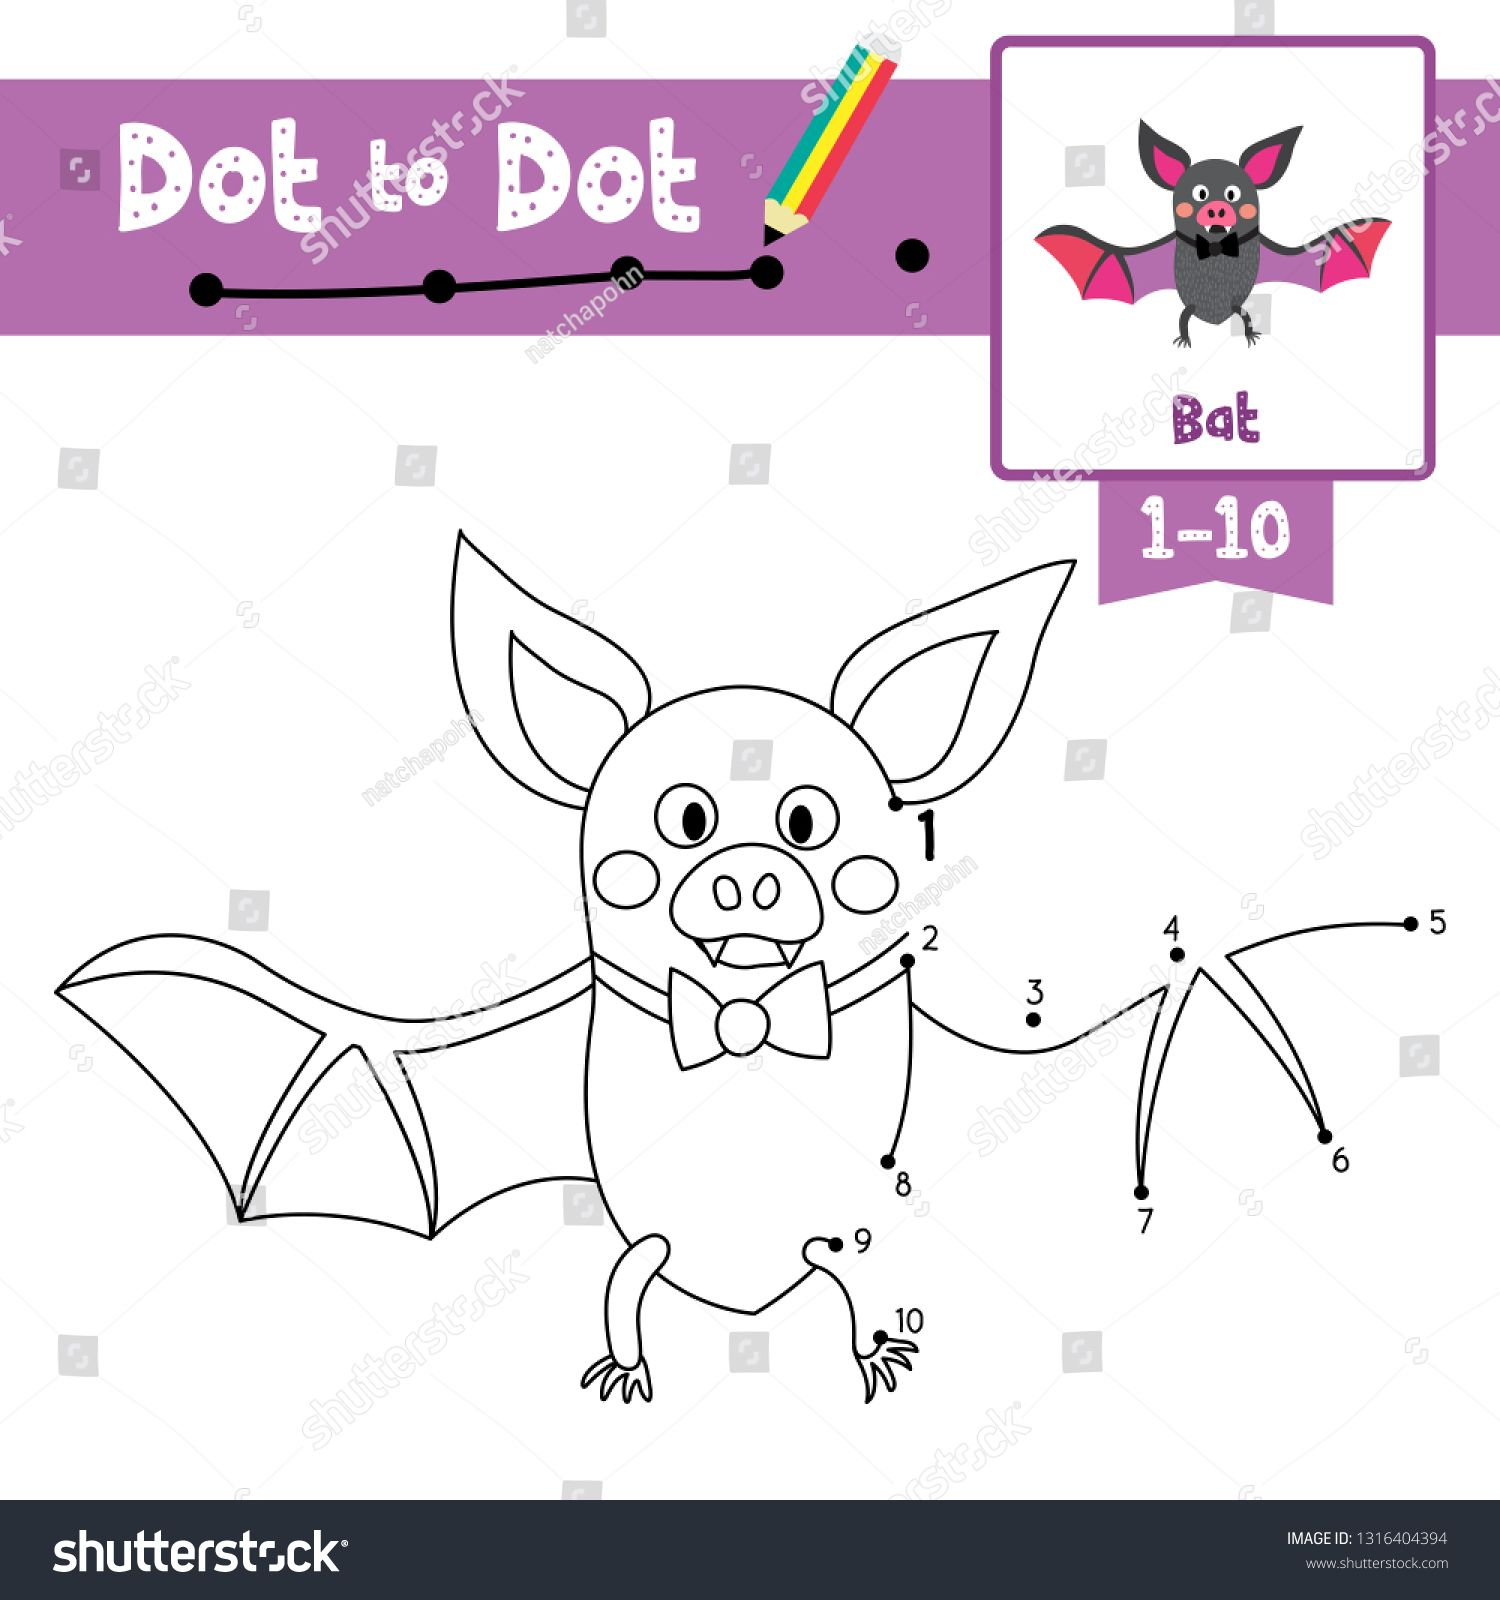 Dot To Dot Educational Game And Coloring Book Of Bat With